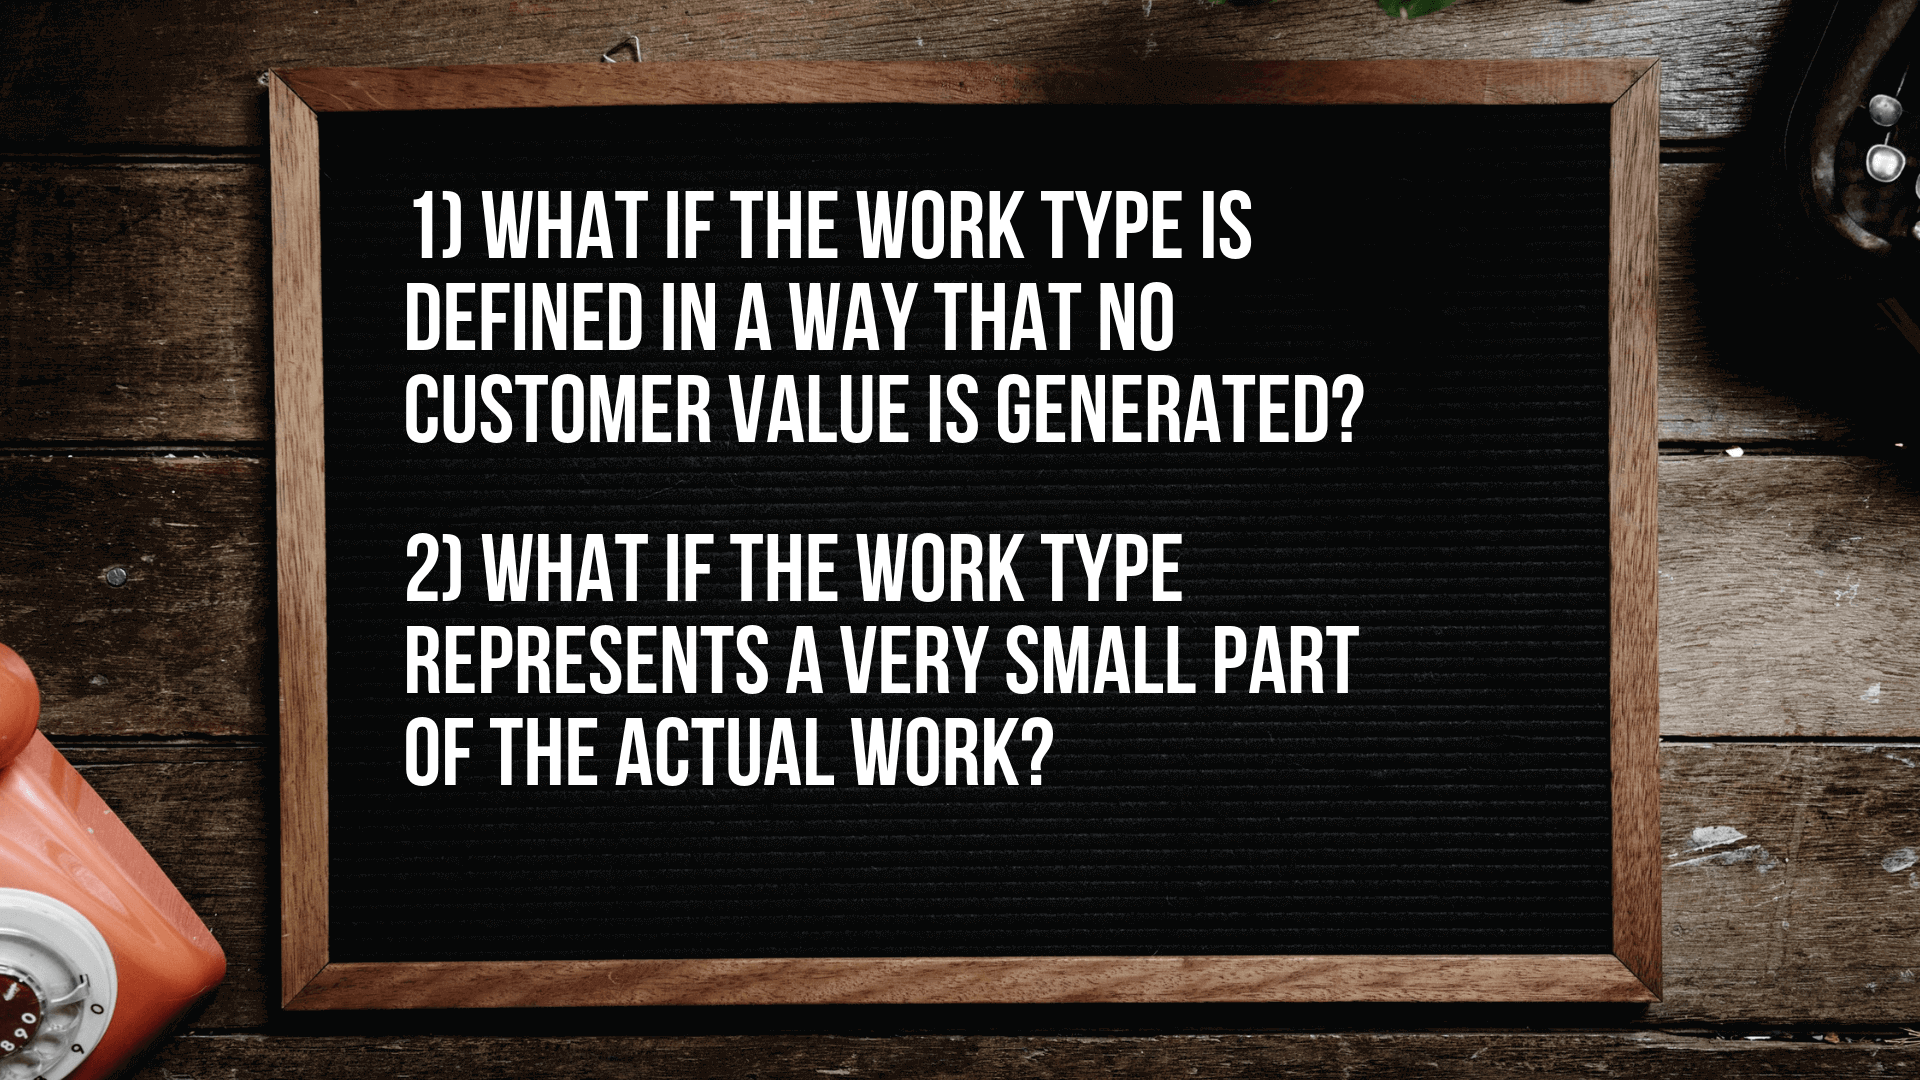 What if the work type is defined in a way that no customer value is generated? What if the work type represents a very small part of the actual work?